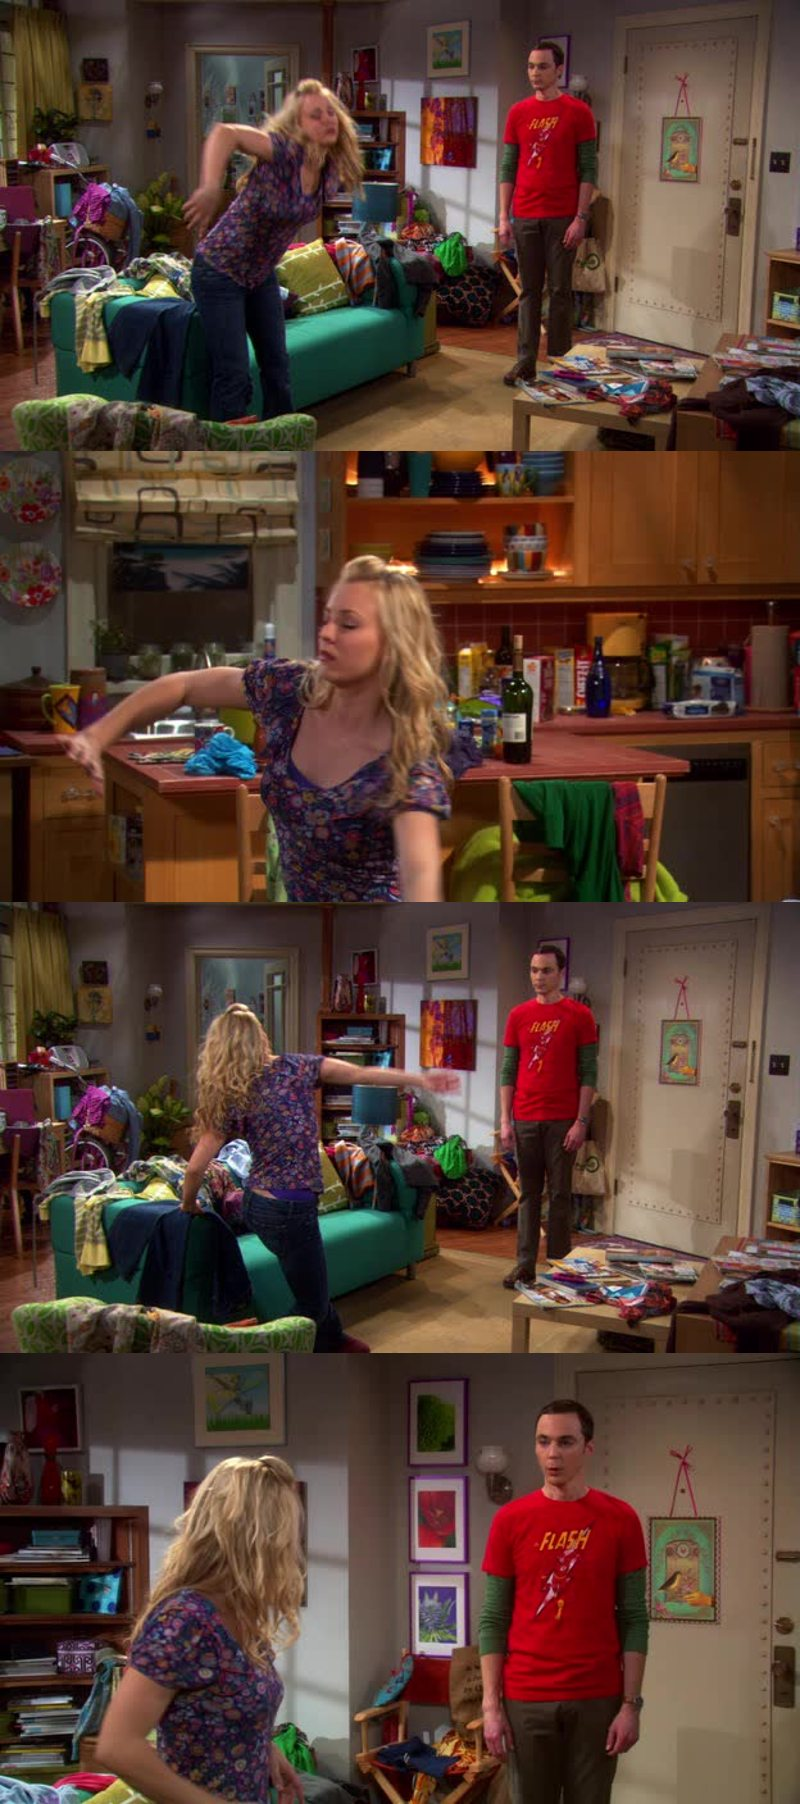 This scene 😂😂 Sheldon and Penny are the best, so funny